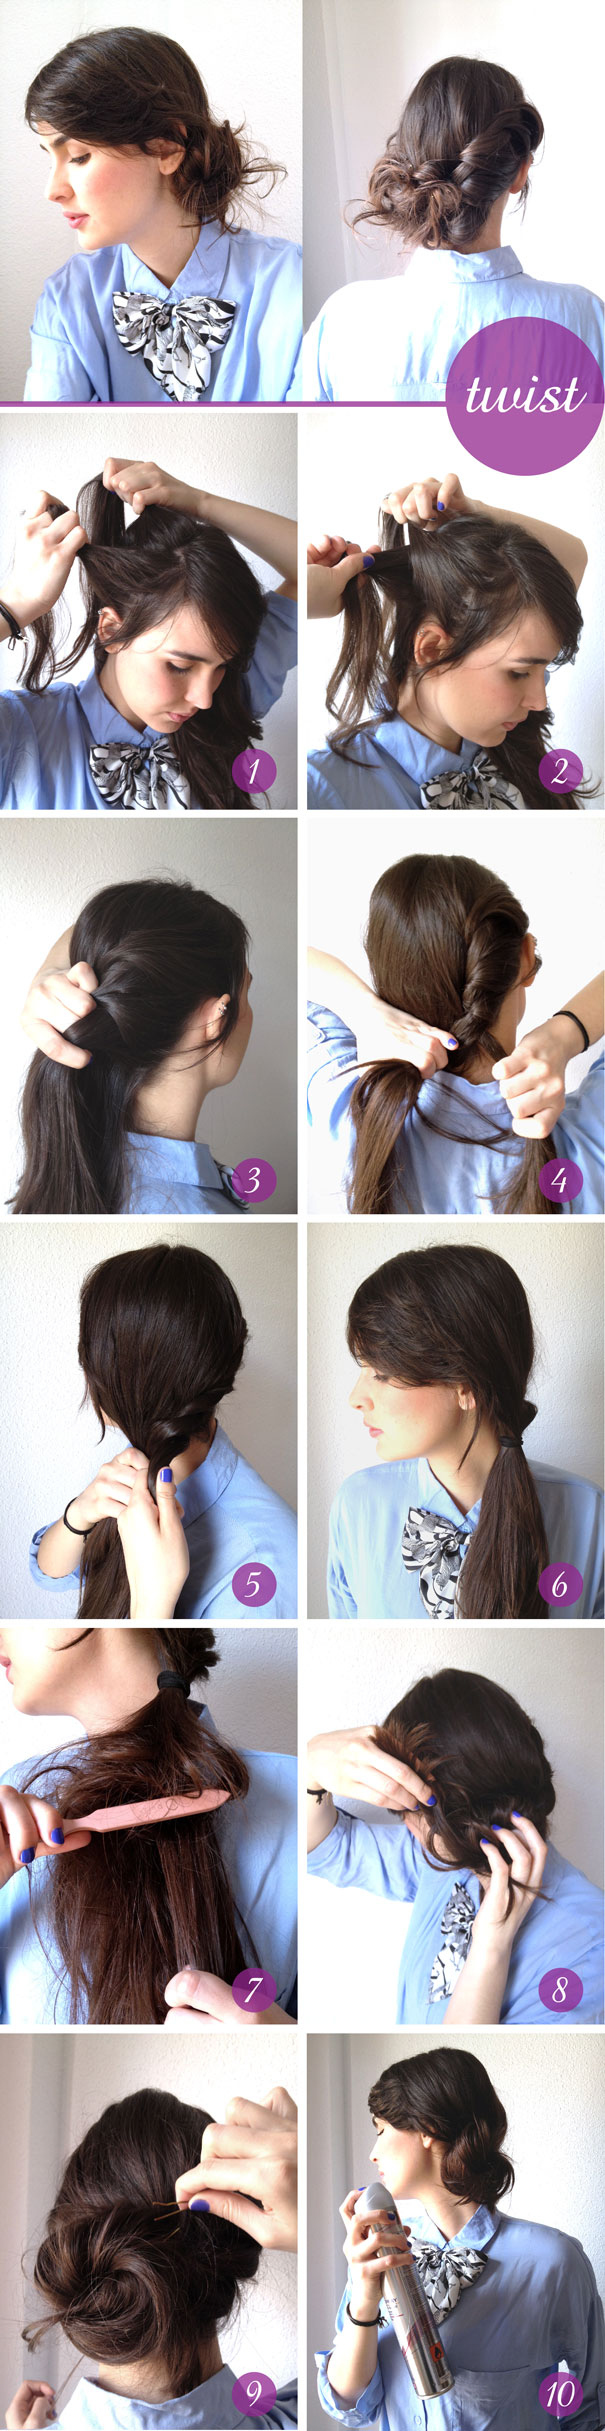 61 Images About Hair Inspiration On We Heart It See More About